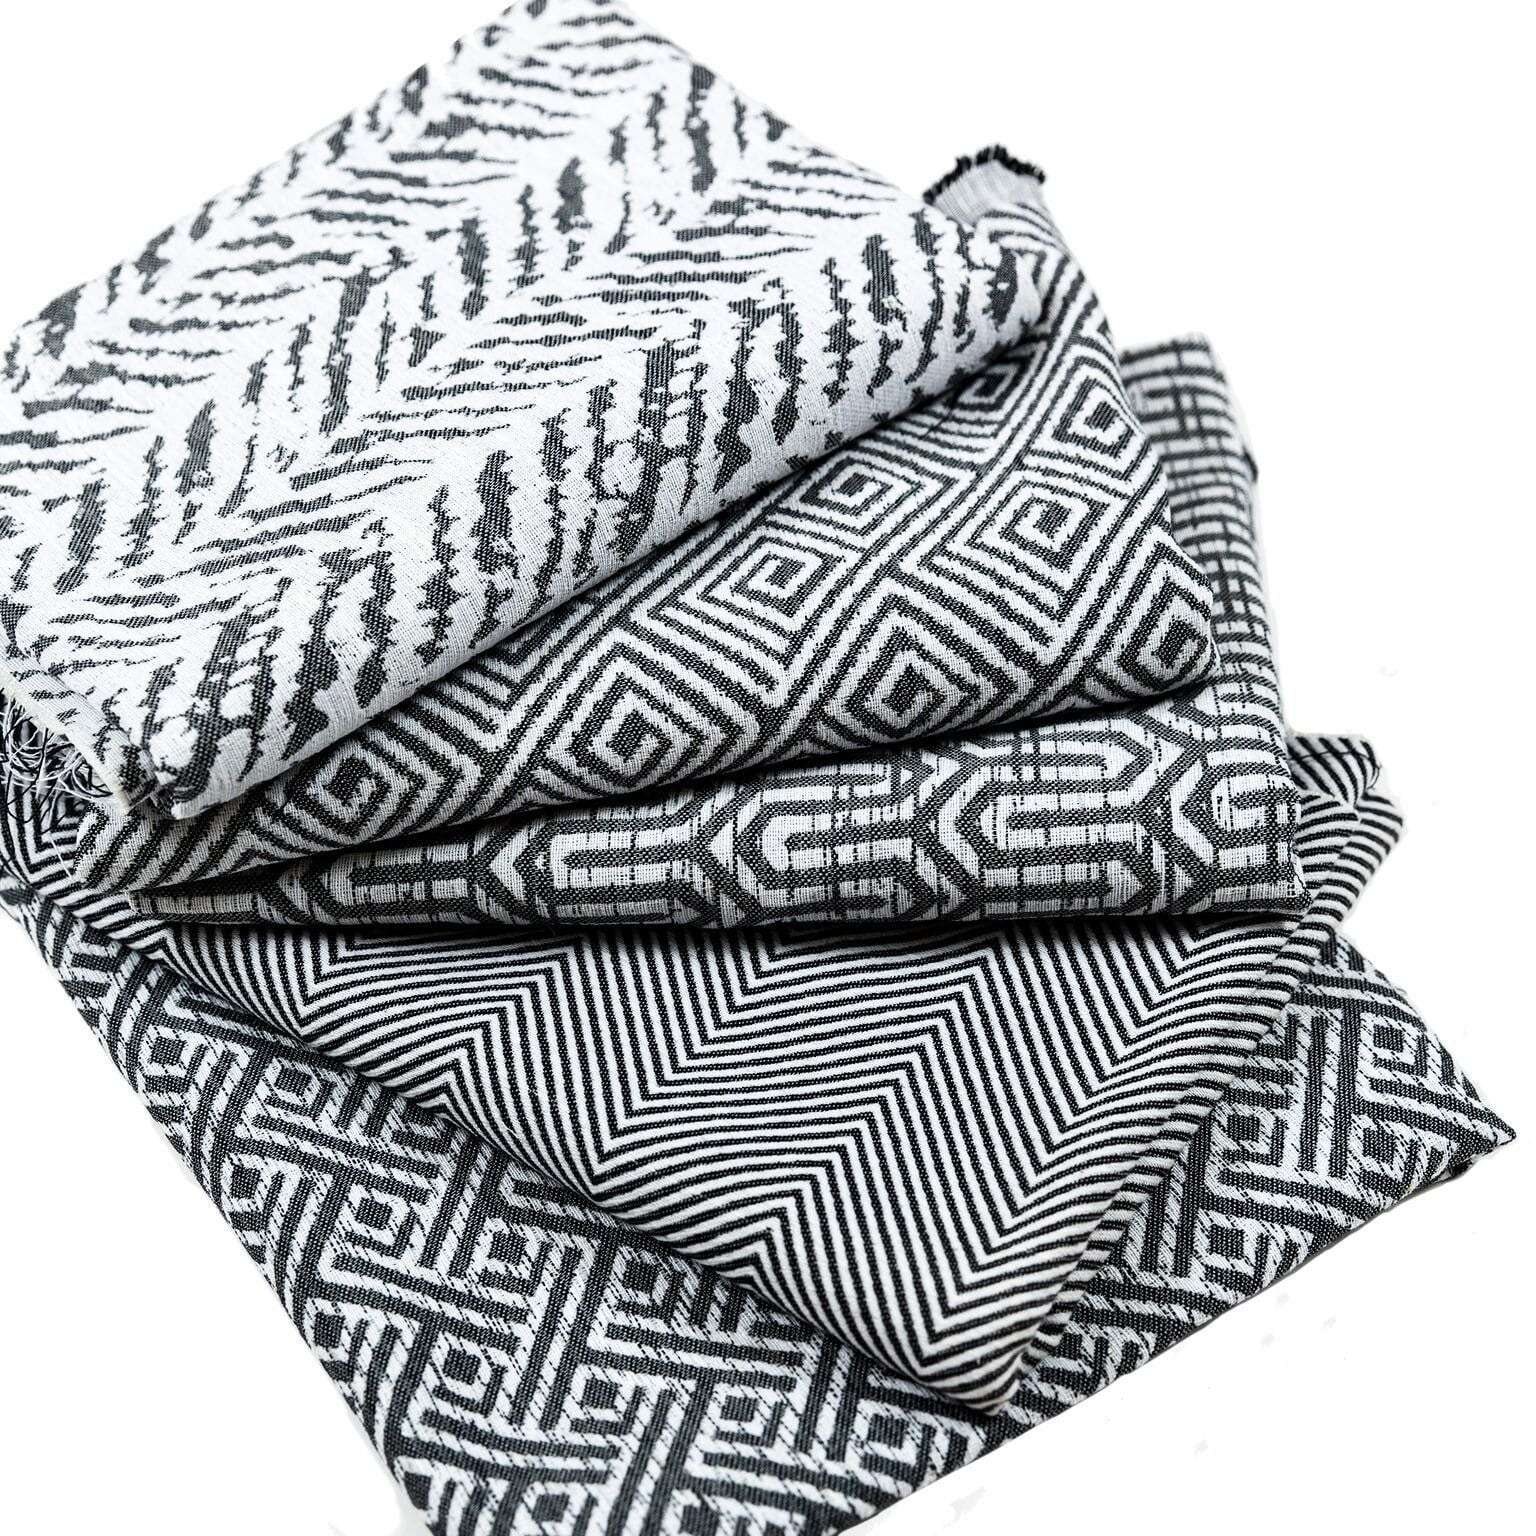 McAlister Textiles Herringbone Twill Black + White Cushion Cushions and Covers